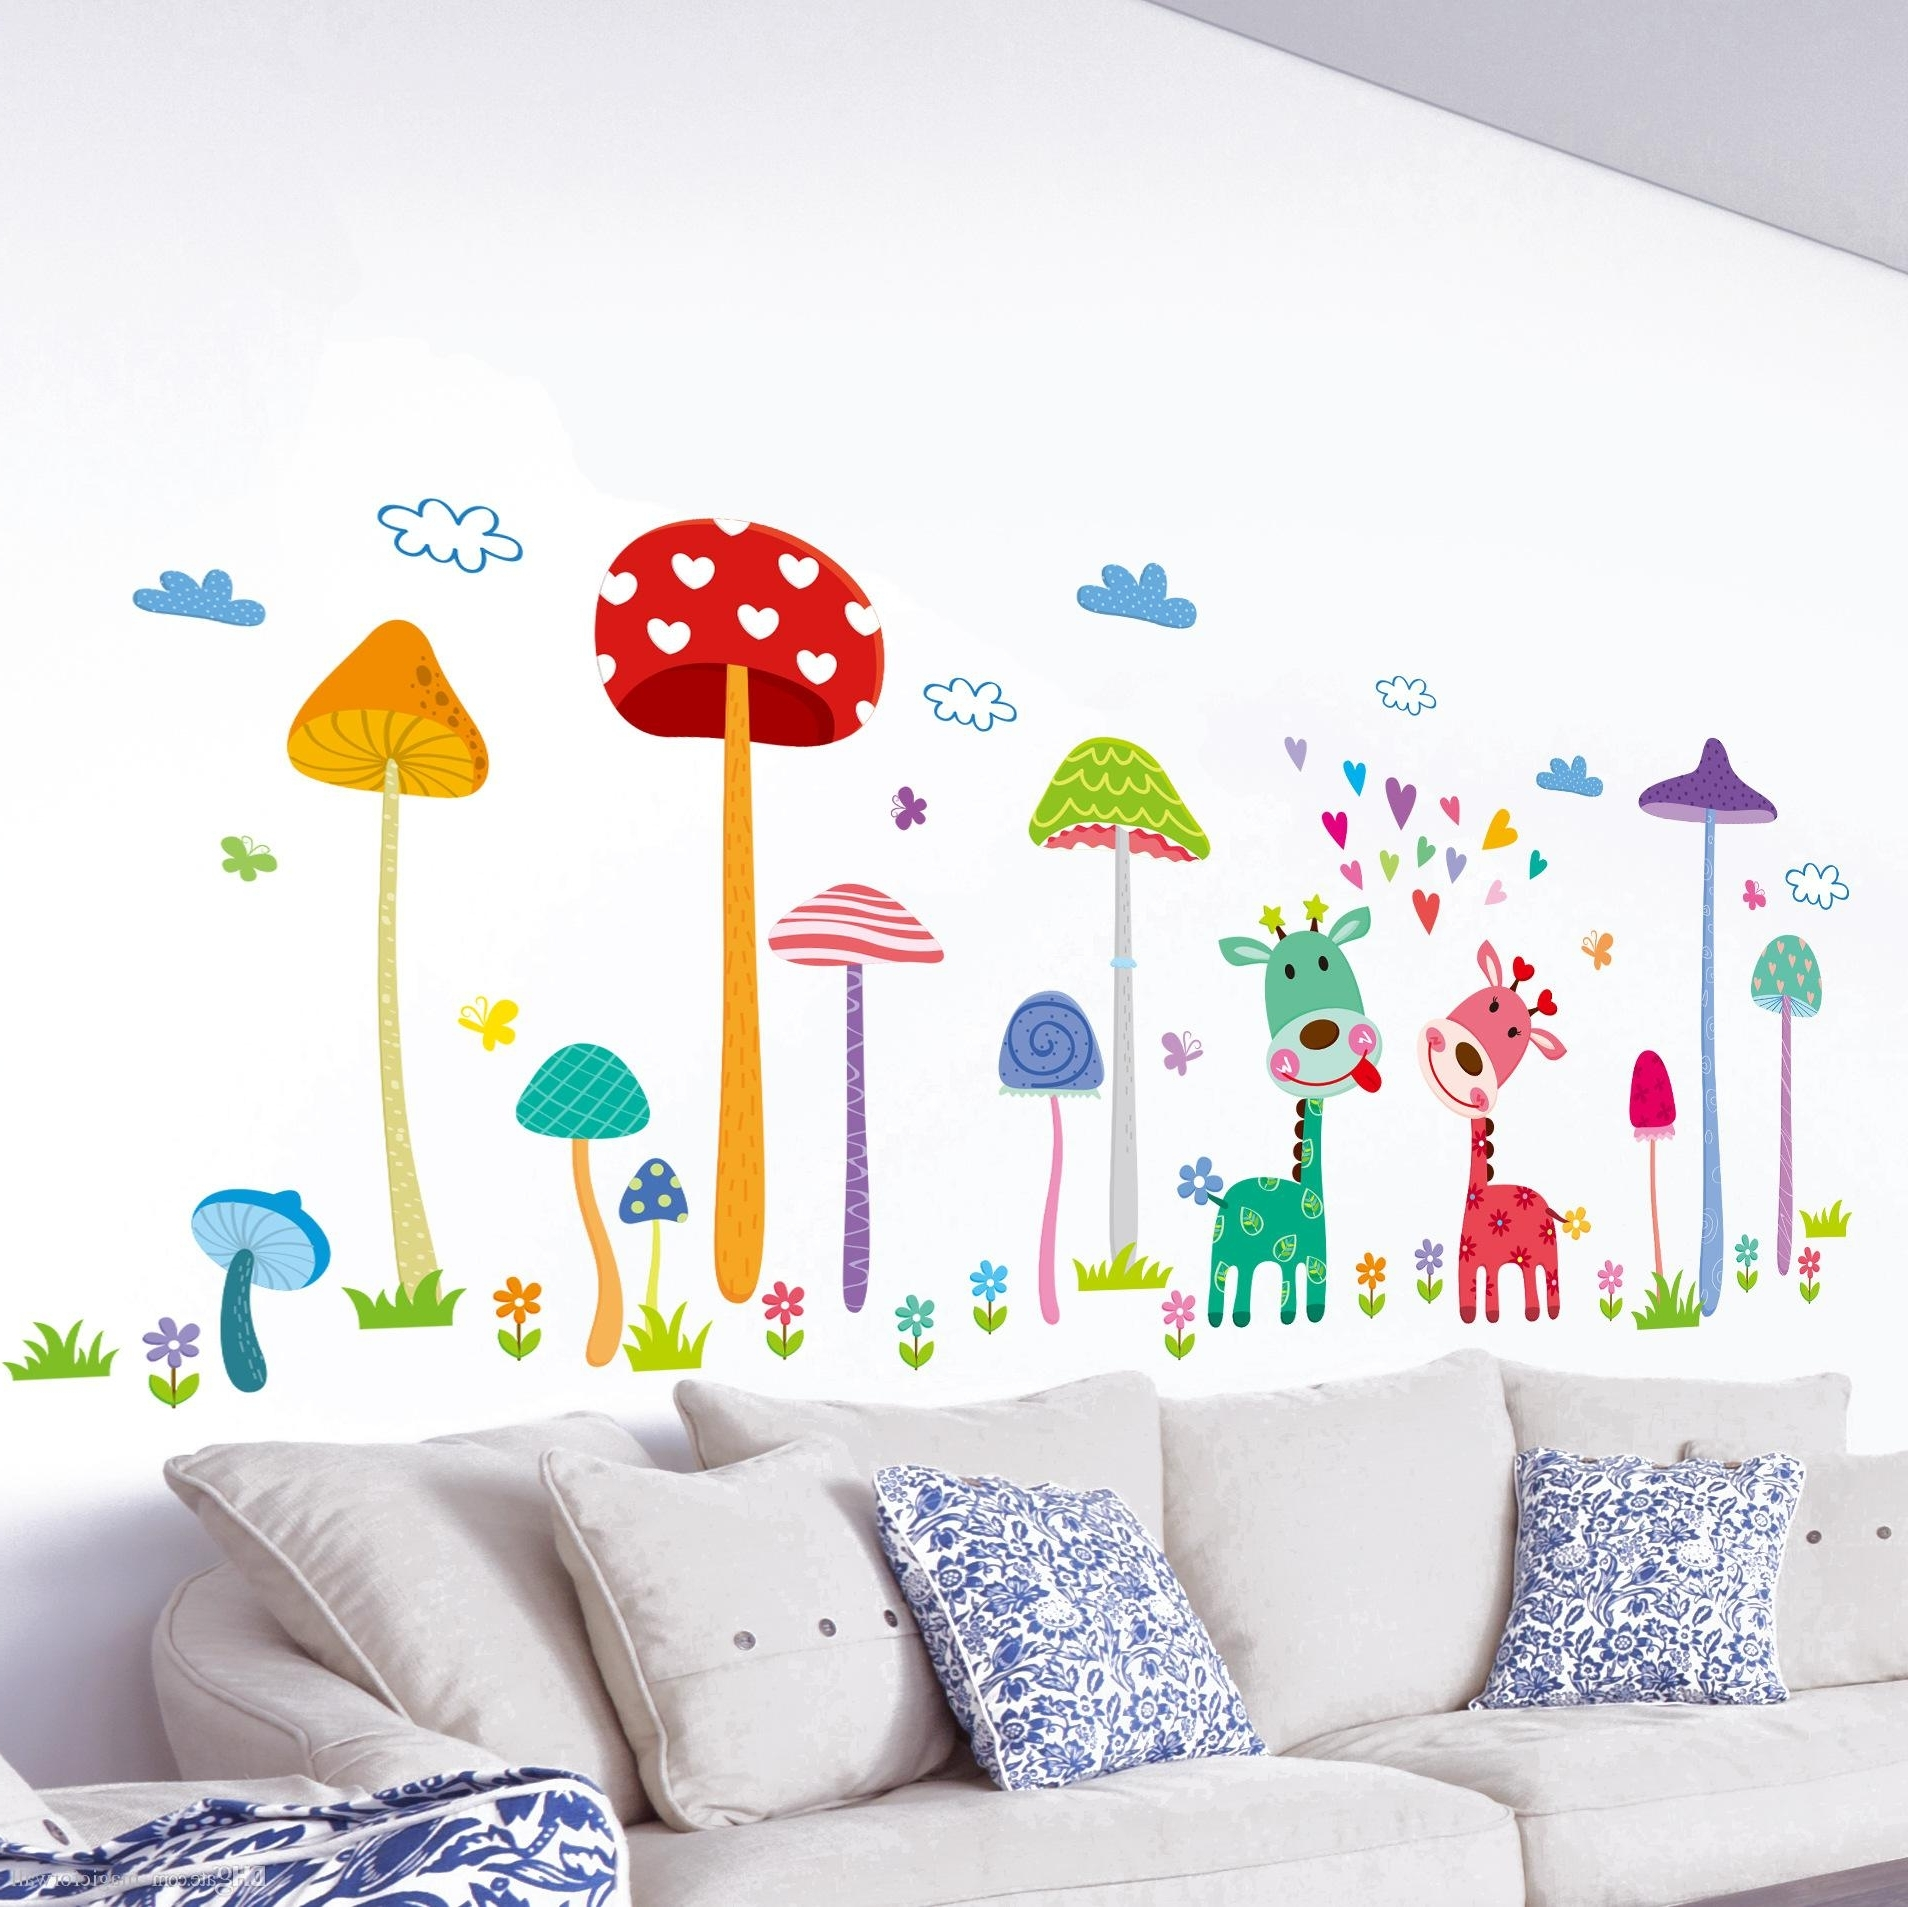 Home Wall Art With Regard To Best And Newest Forest Mushroom Deer Animals Home Wall Art Mural Decor Kids Babies (Gallery 15 of 15)